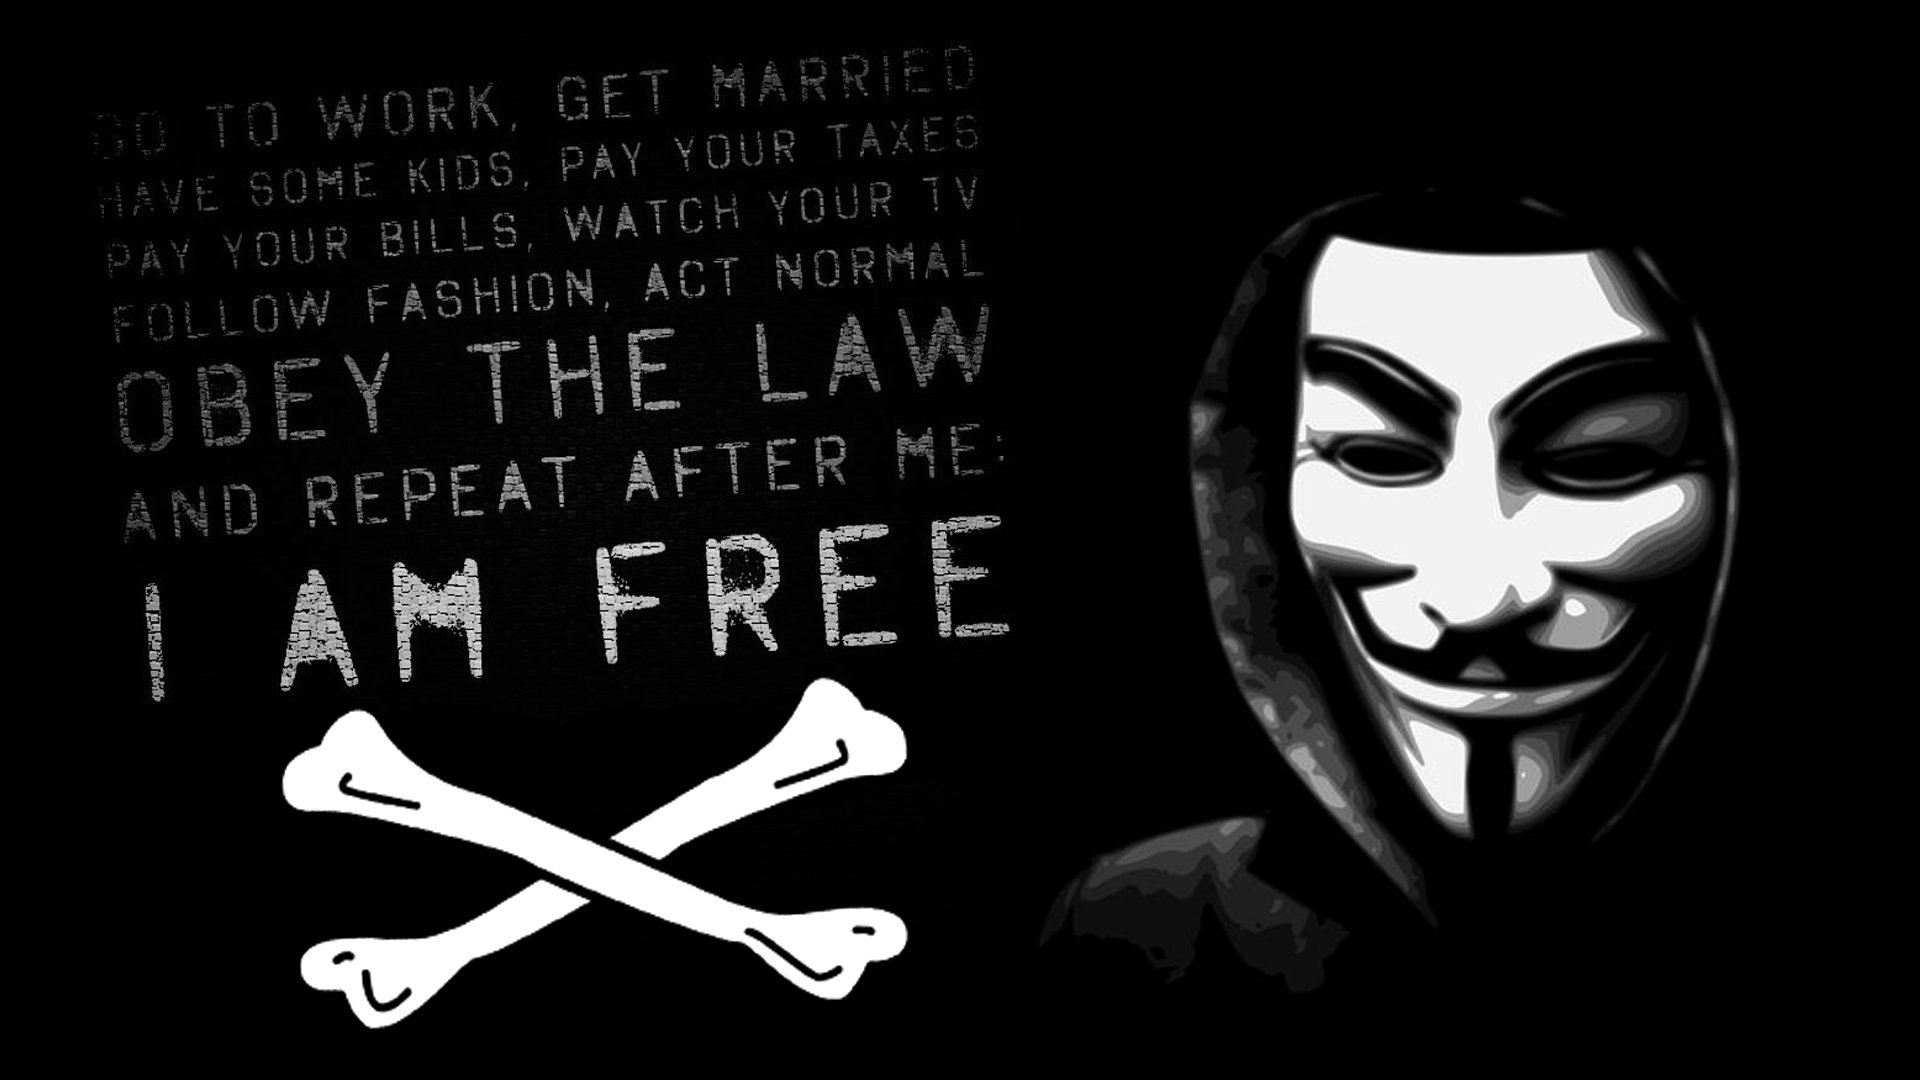 Anonymous Wallpaper 19201080 23952 HD Wallpaper Res 1920x1080 1920x1080